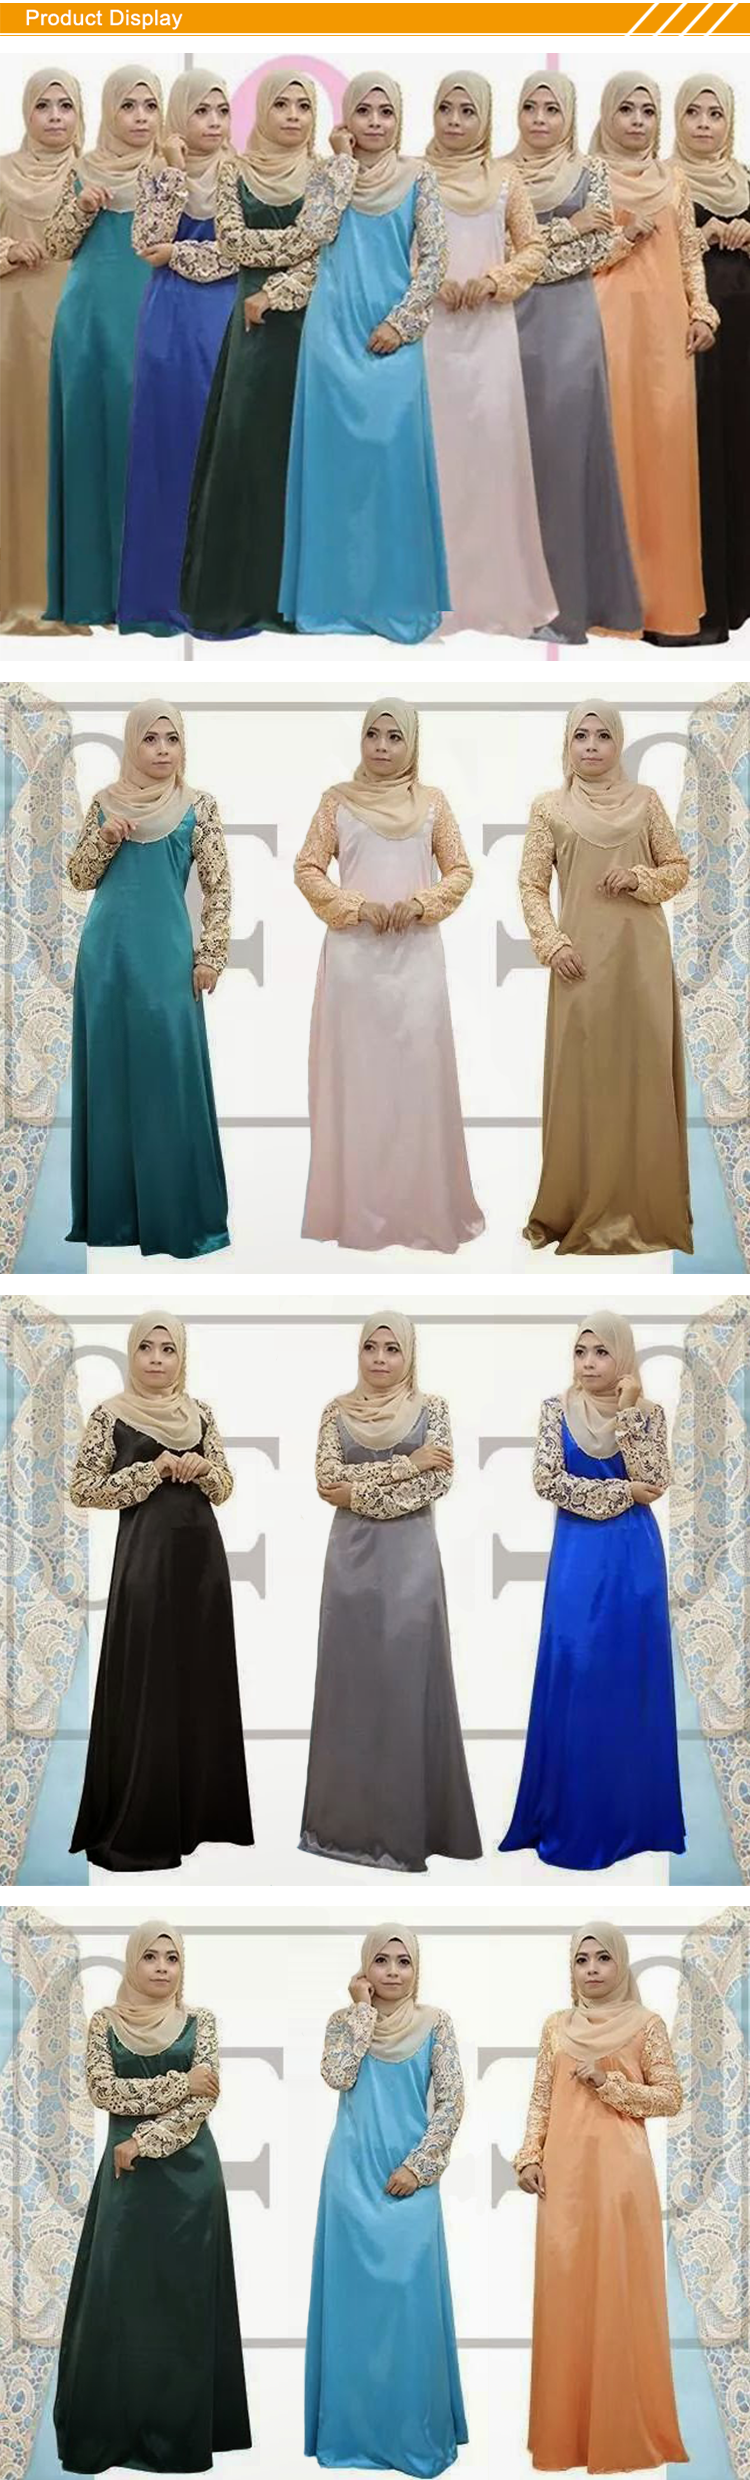 Md A034 grosir muslim maxi dress thailand kualitas tinggi renda + satin maxi dress muslim gaya busana muslim maxi dress